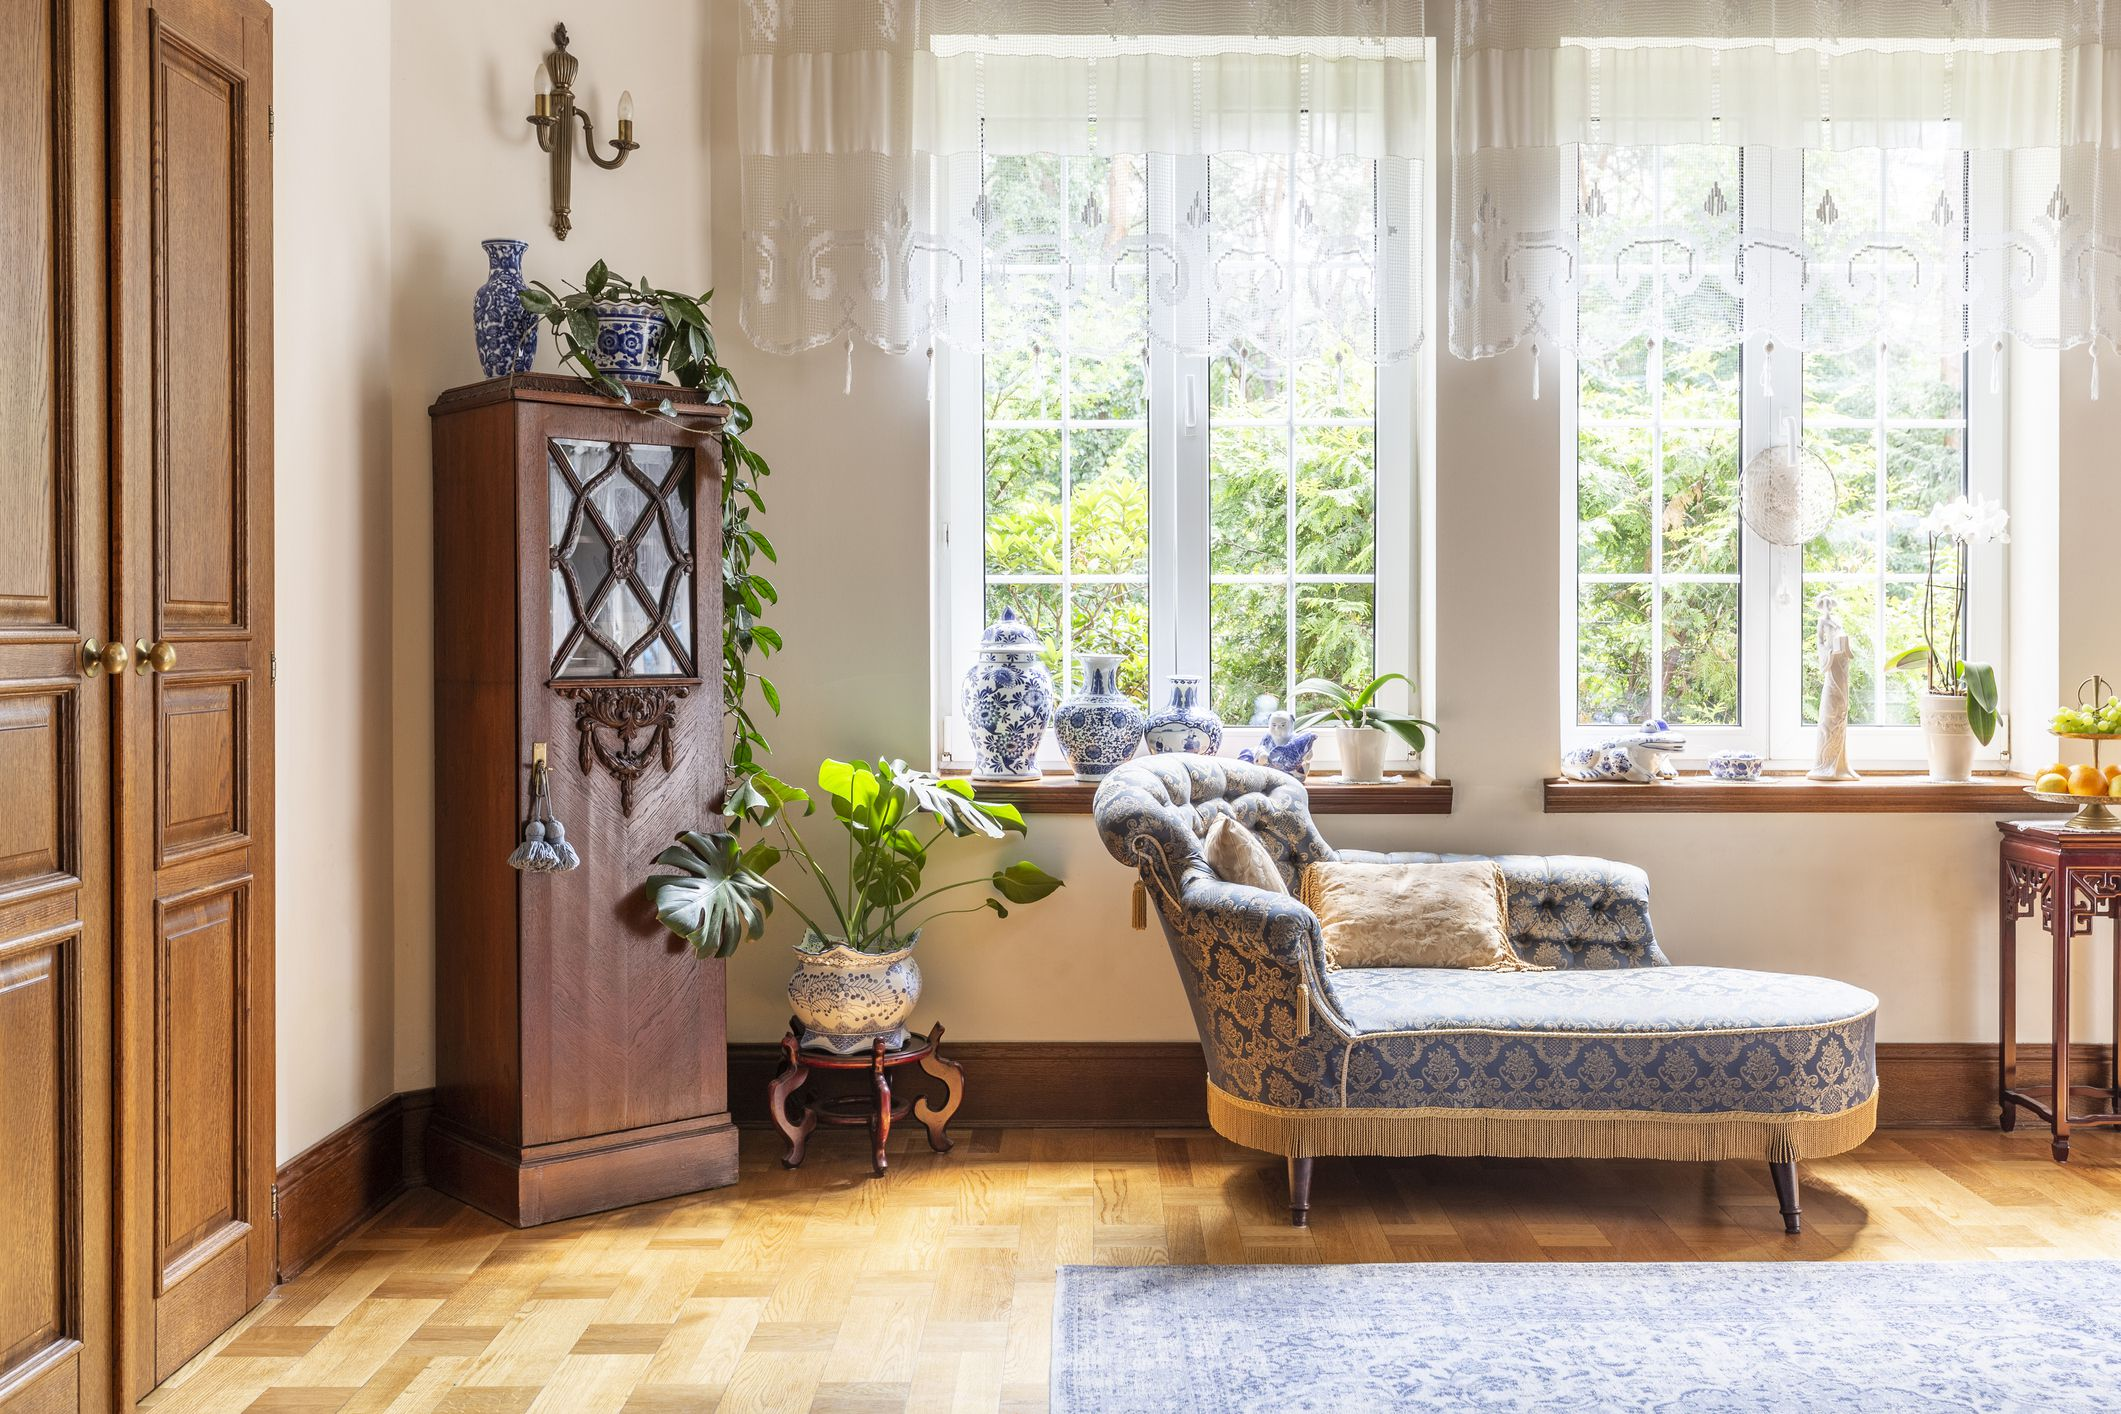 curio cabinet decorating ideas.htm how to decorate in the english country style  decorate in the english country style